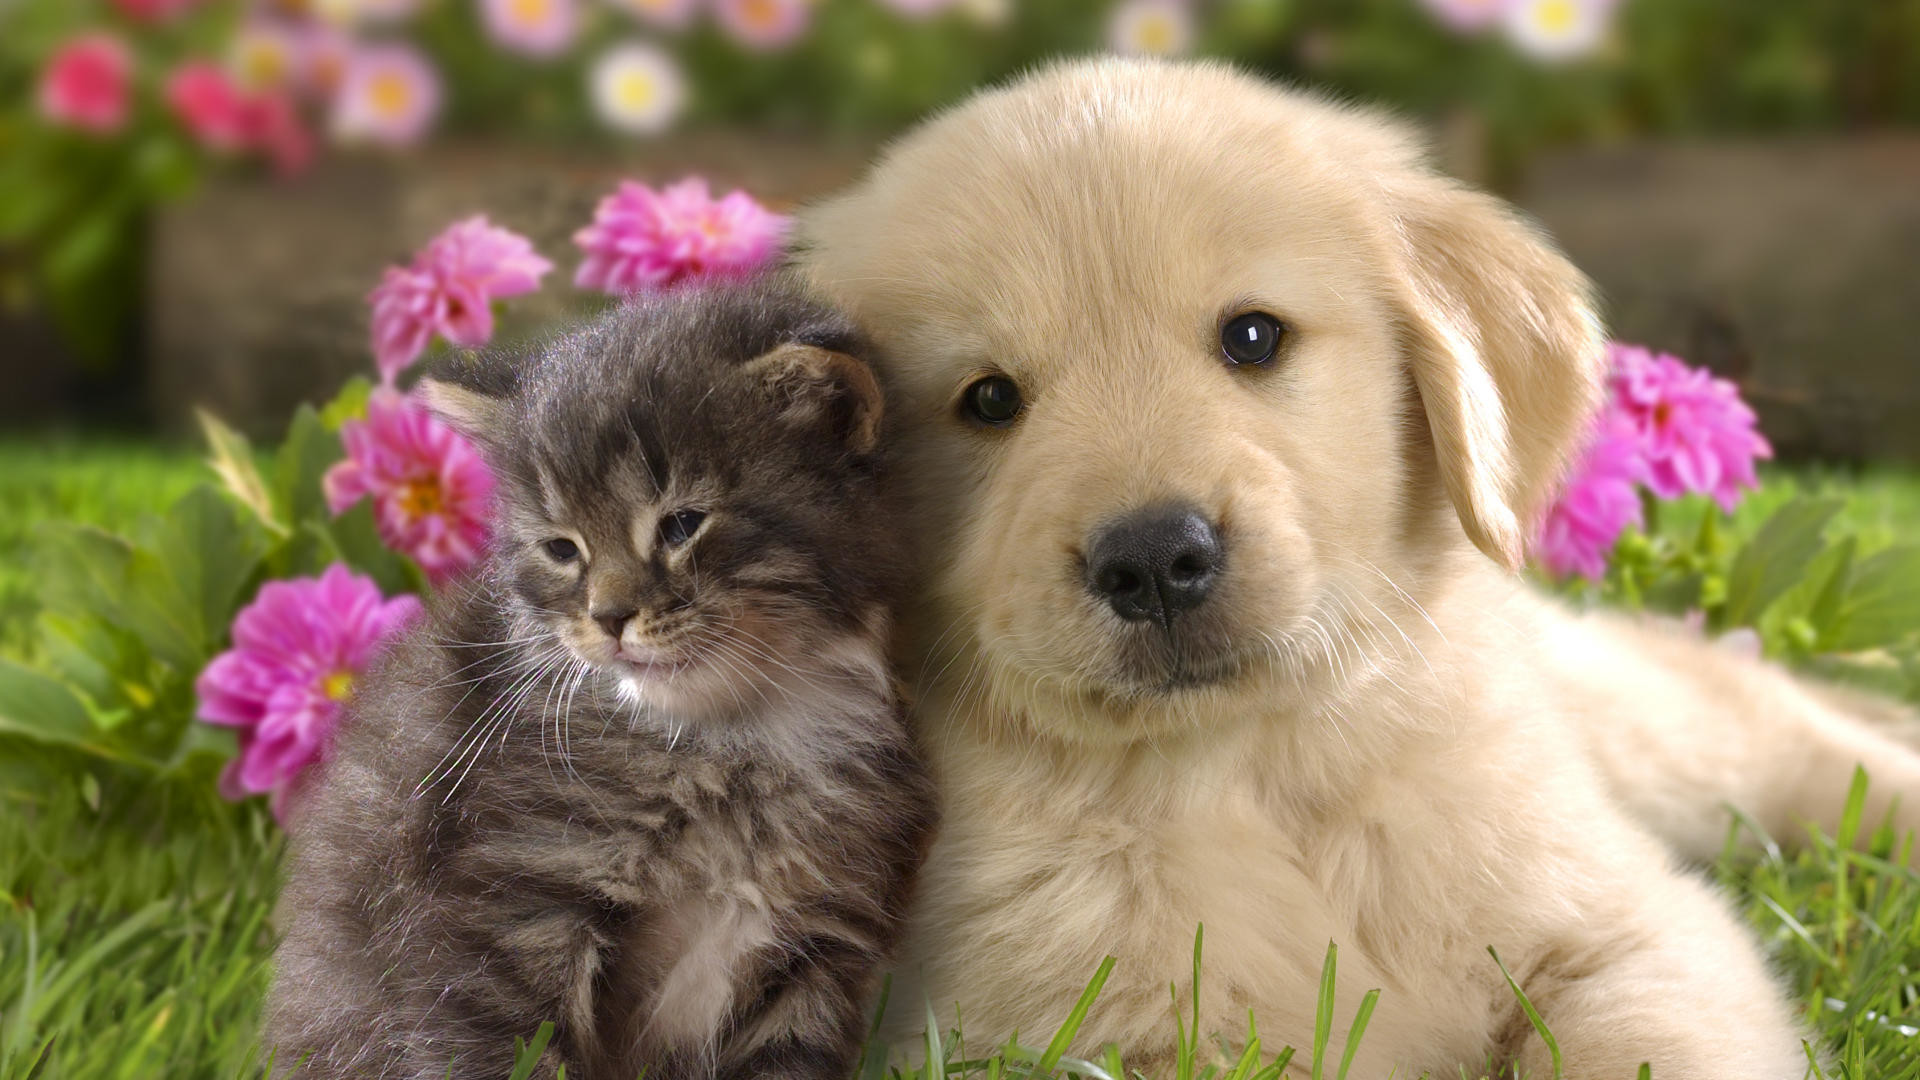 Cute Cats And Kittens And Dogswallpapers Kittens Puppy Cu Cute Dog Kitten  Love Nice O Pisica